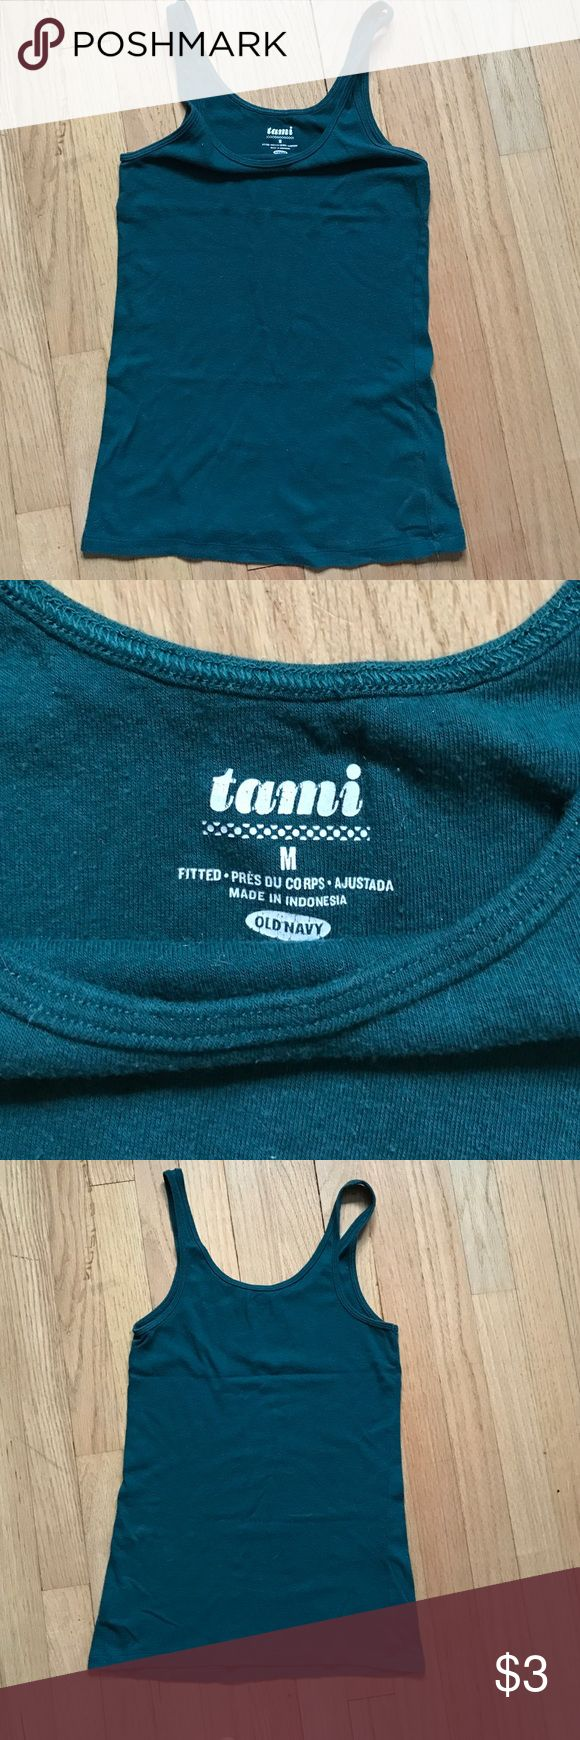 Old navy teal medium fitted cami worn 3x Old navy teal medium fitted cami worn 3x too snug for me!  I AM OPEN TO OFFERS (unless item is listed $4 or $5 or below) PLEASE MAKE OFFER THROUGH OFFER FEATURE 😊 Old Navy Tops Camisoles